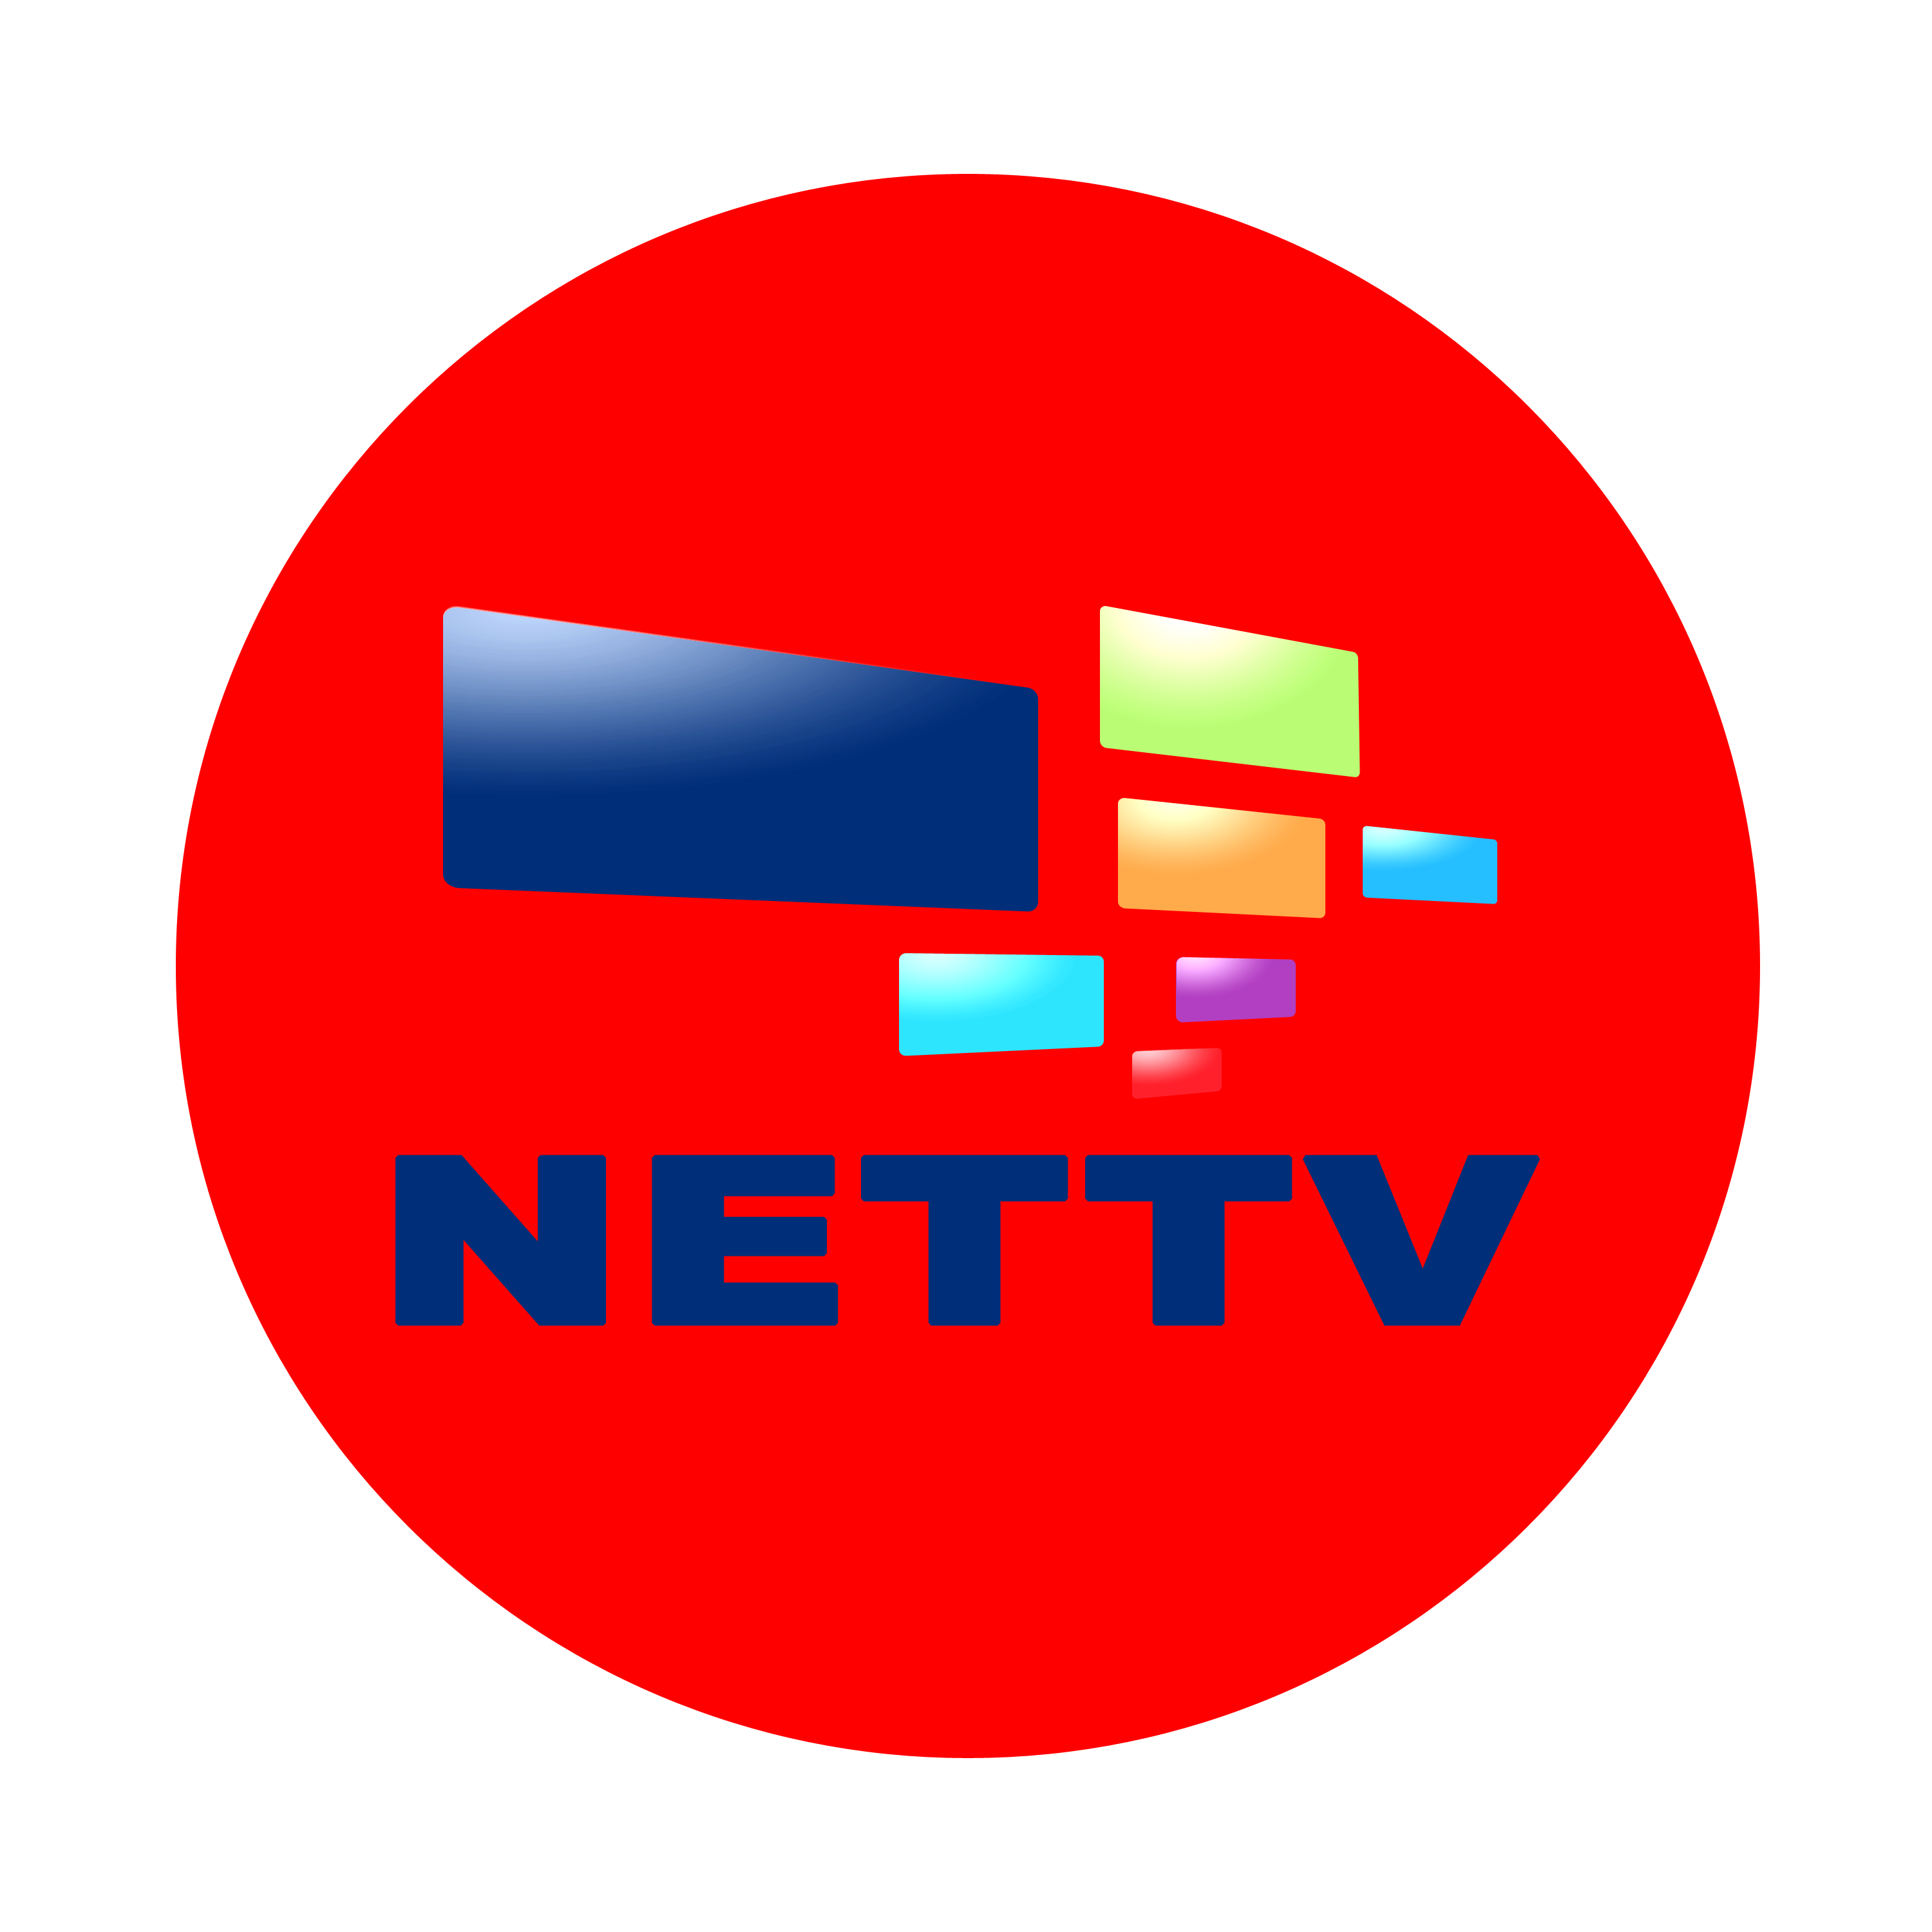 Logo net tv png. Nettv support welcome to